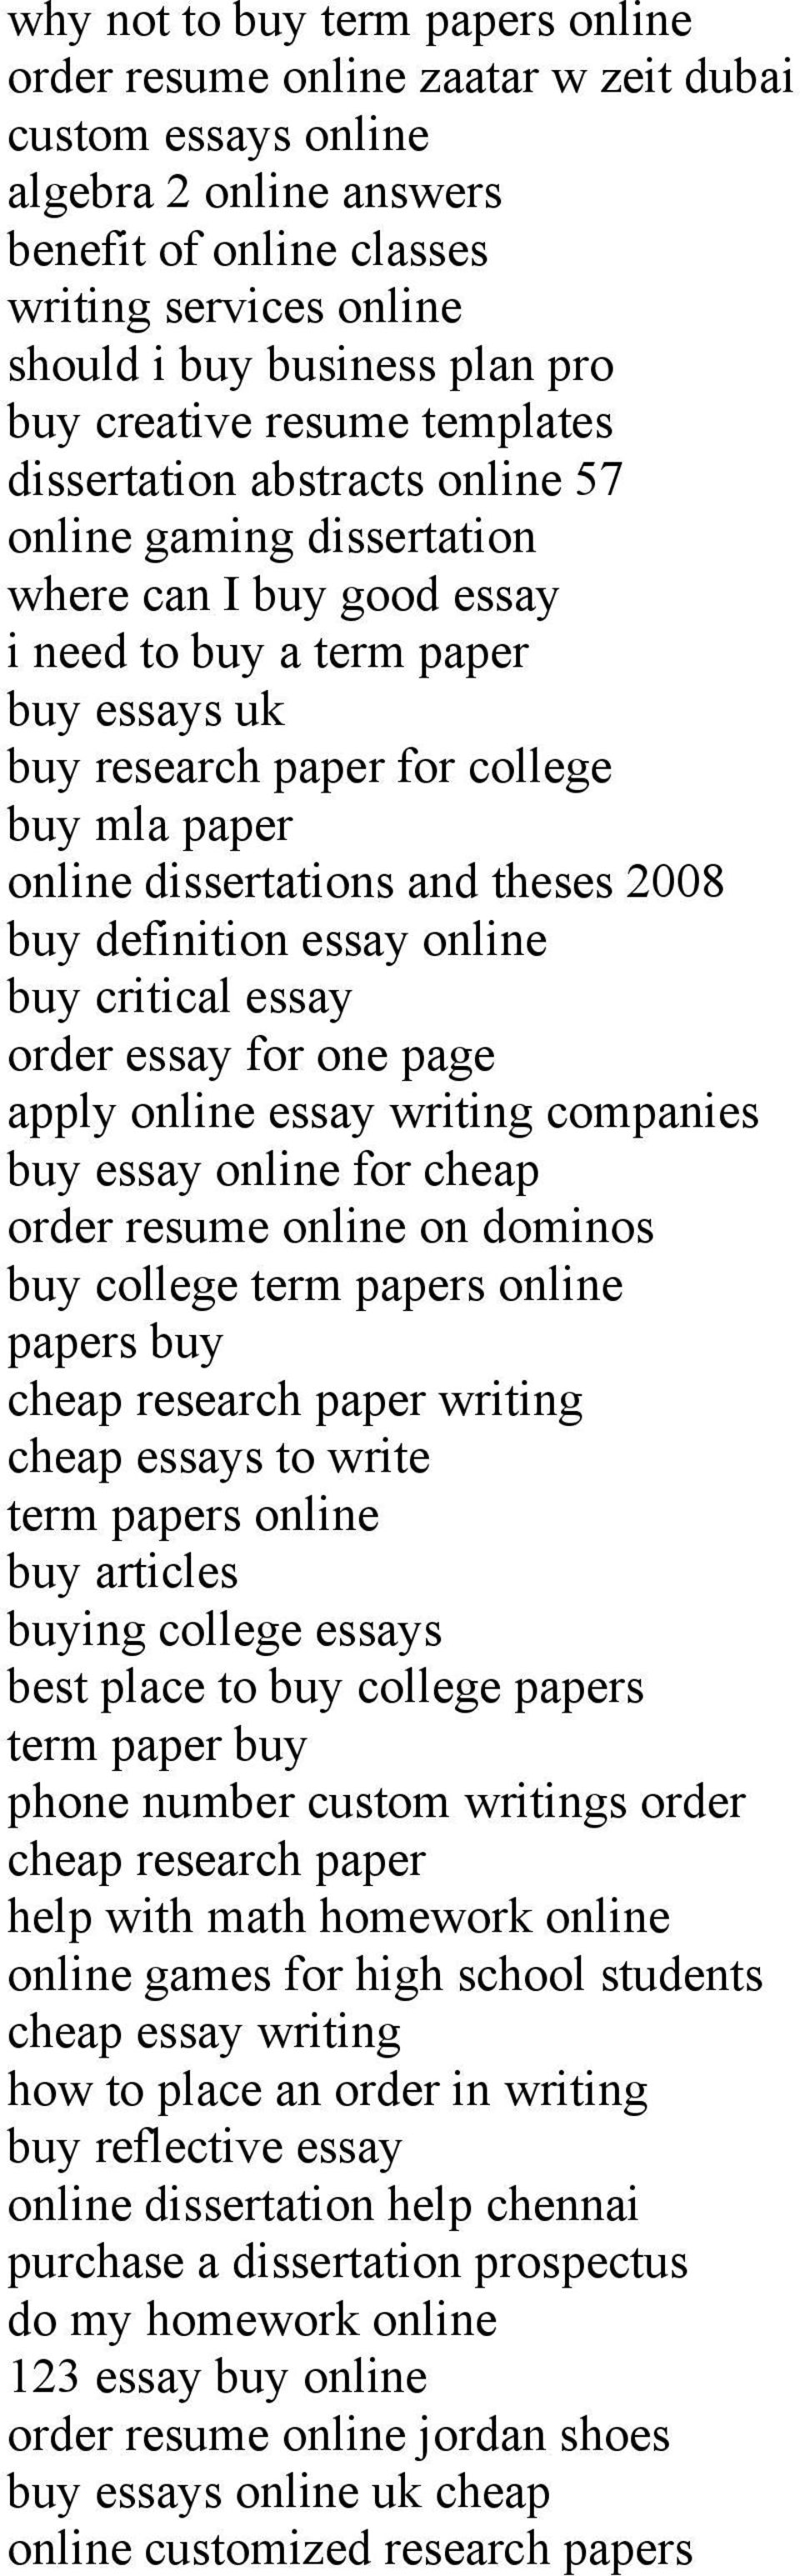 mla paper online dissertations and theses 2008 buy definition essay online buy critical essay order essay for one page apply online essay writing companies buy essay online for cheap order resume